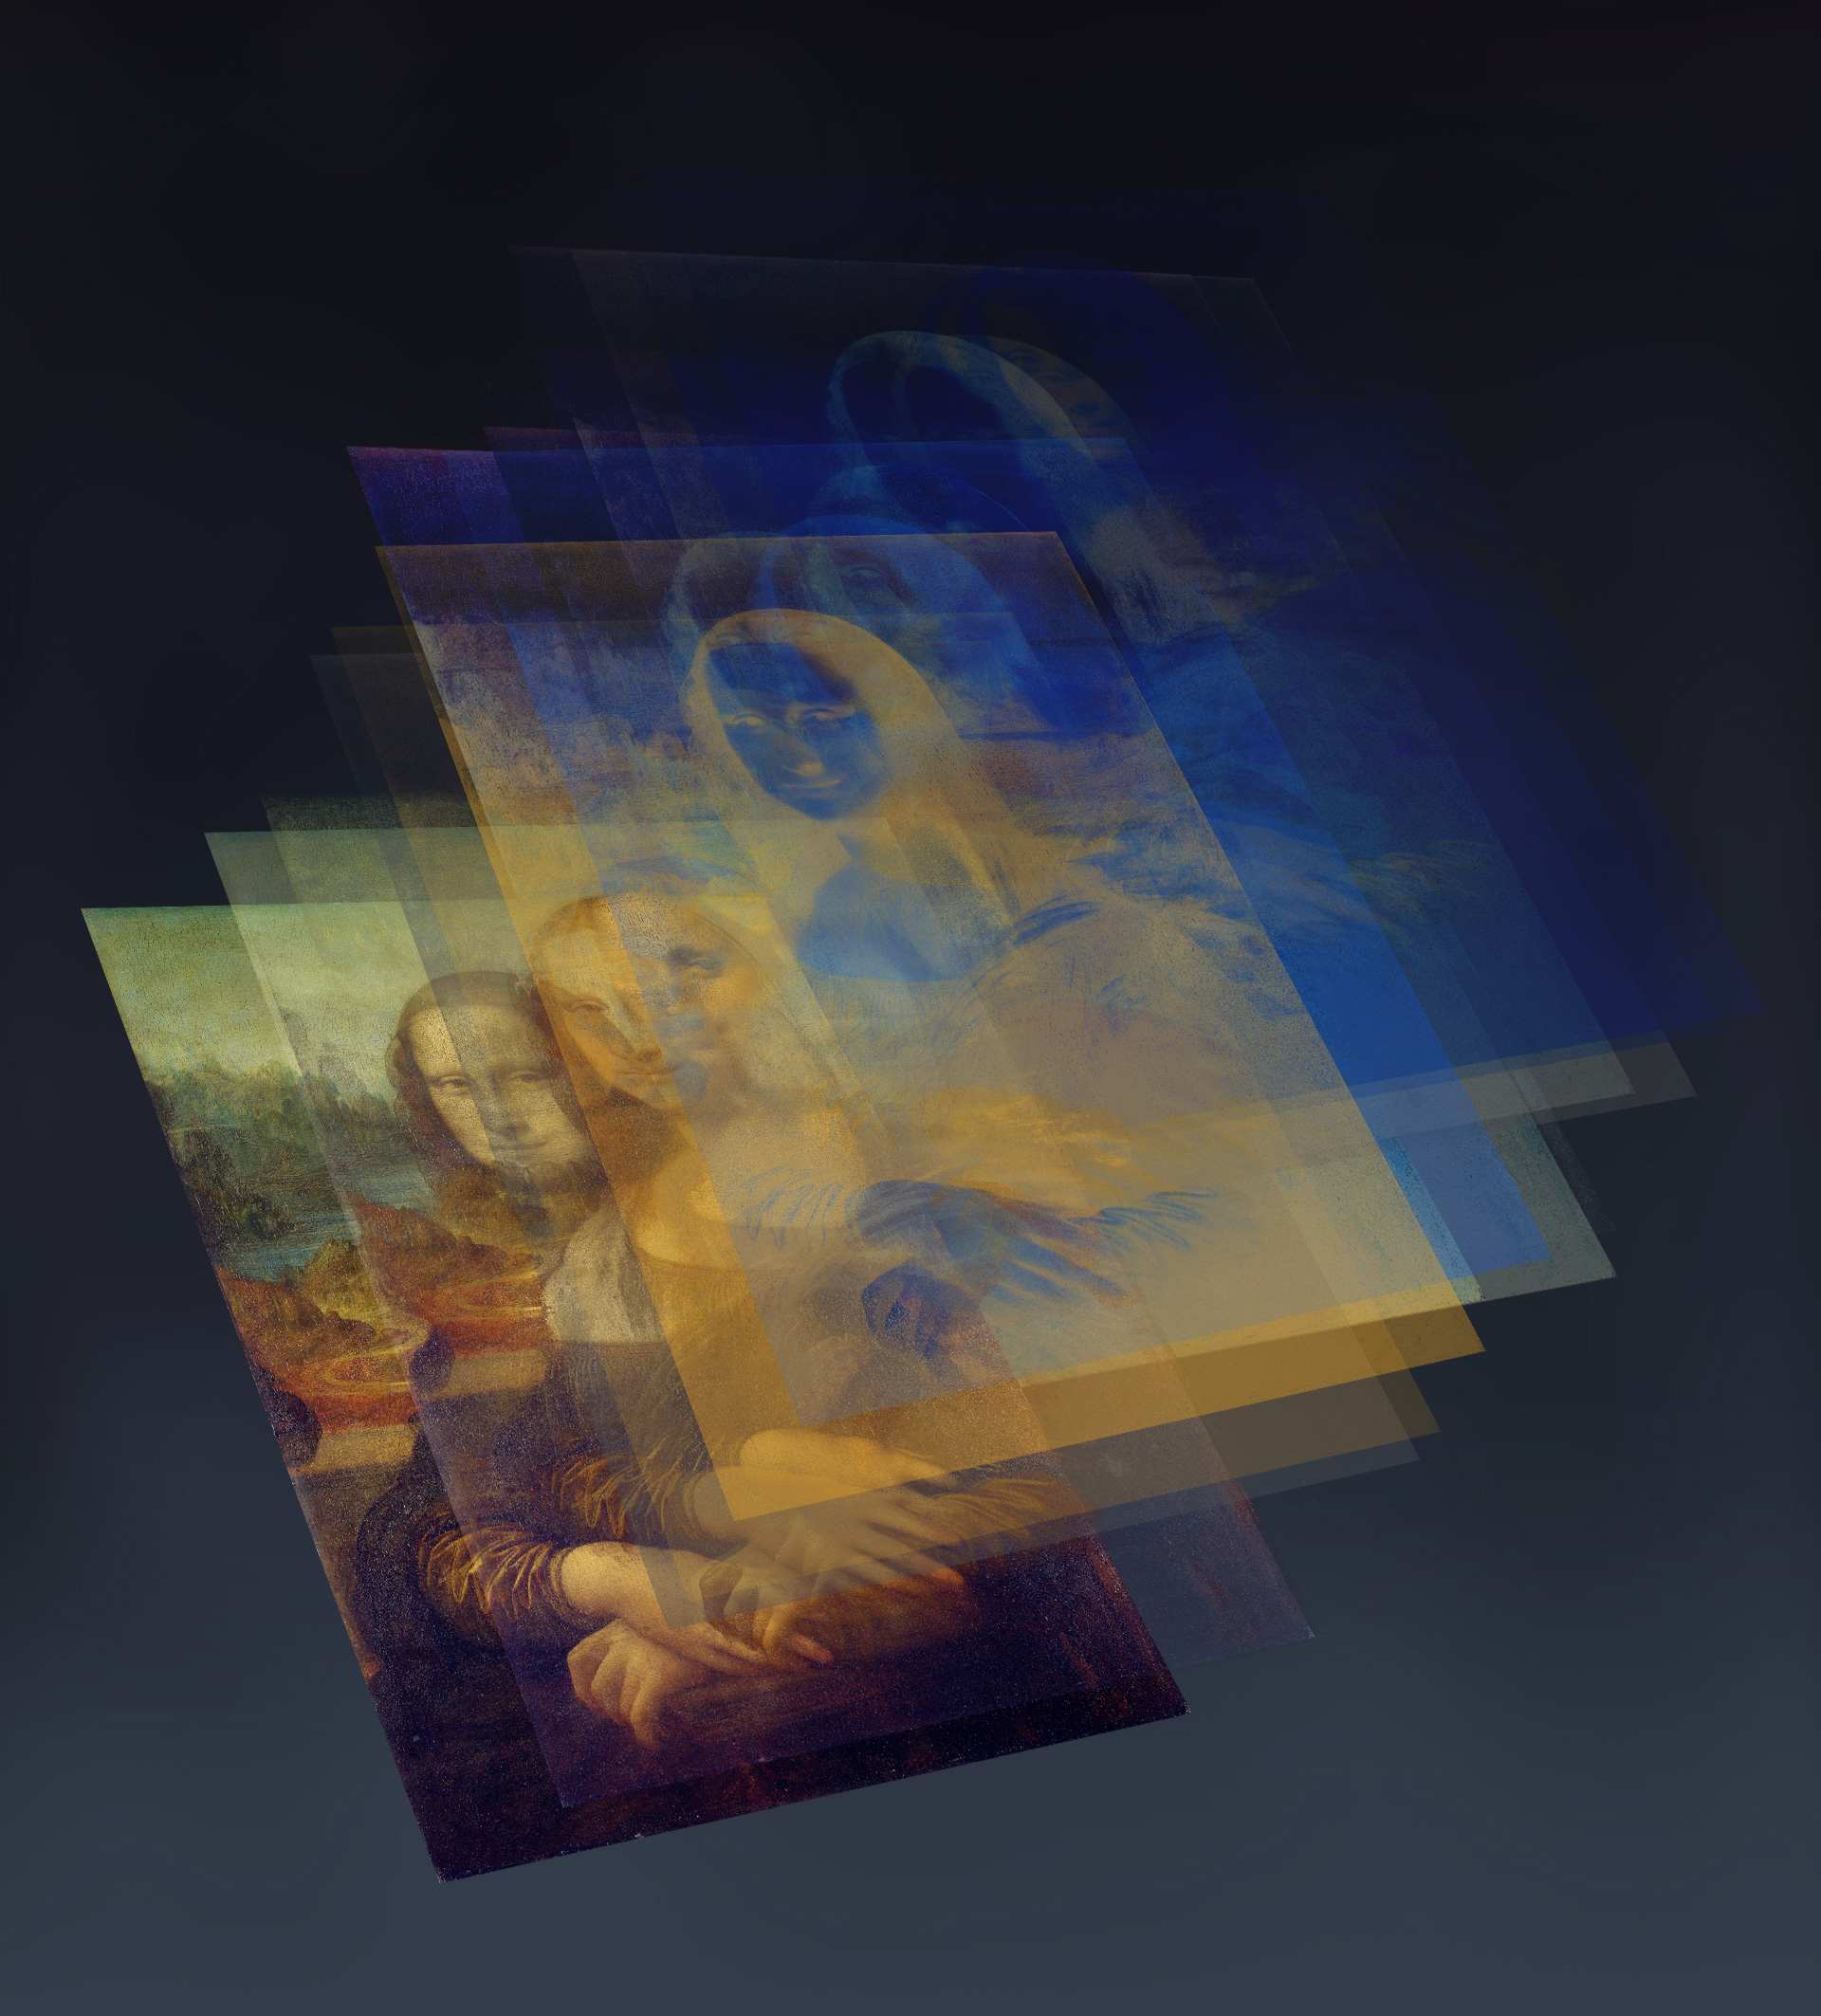 With Mona Lisa: Beyond the Glass, visitors will be able to discover details hidden to the naked eye | Leonardo da Vinci | Musée du Louvre | STIRworld